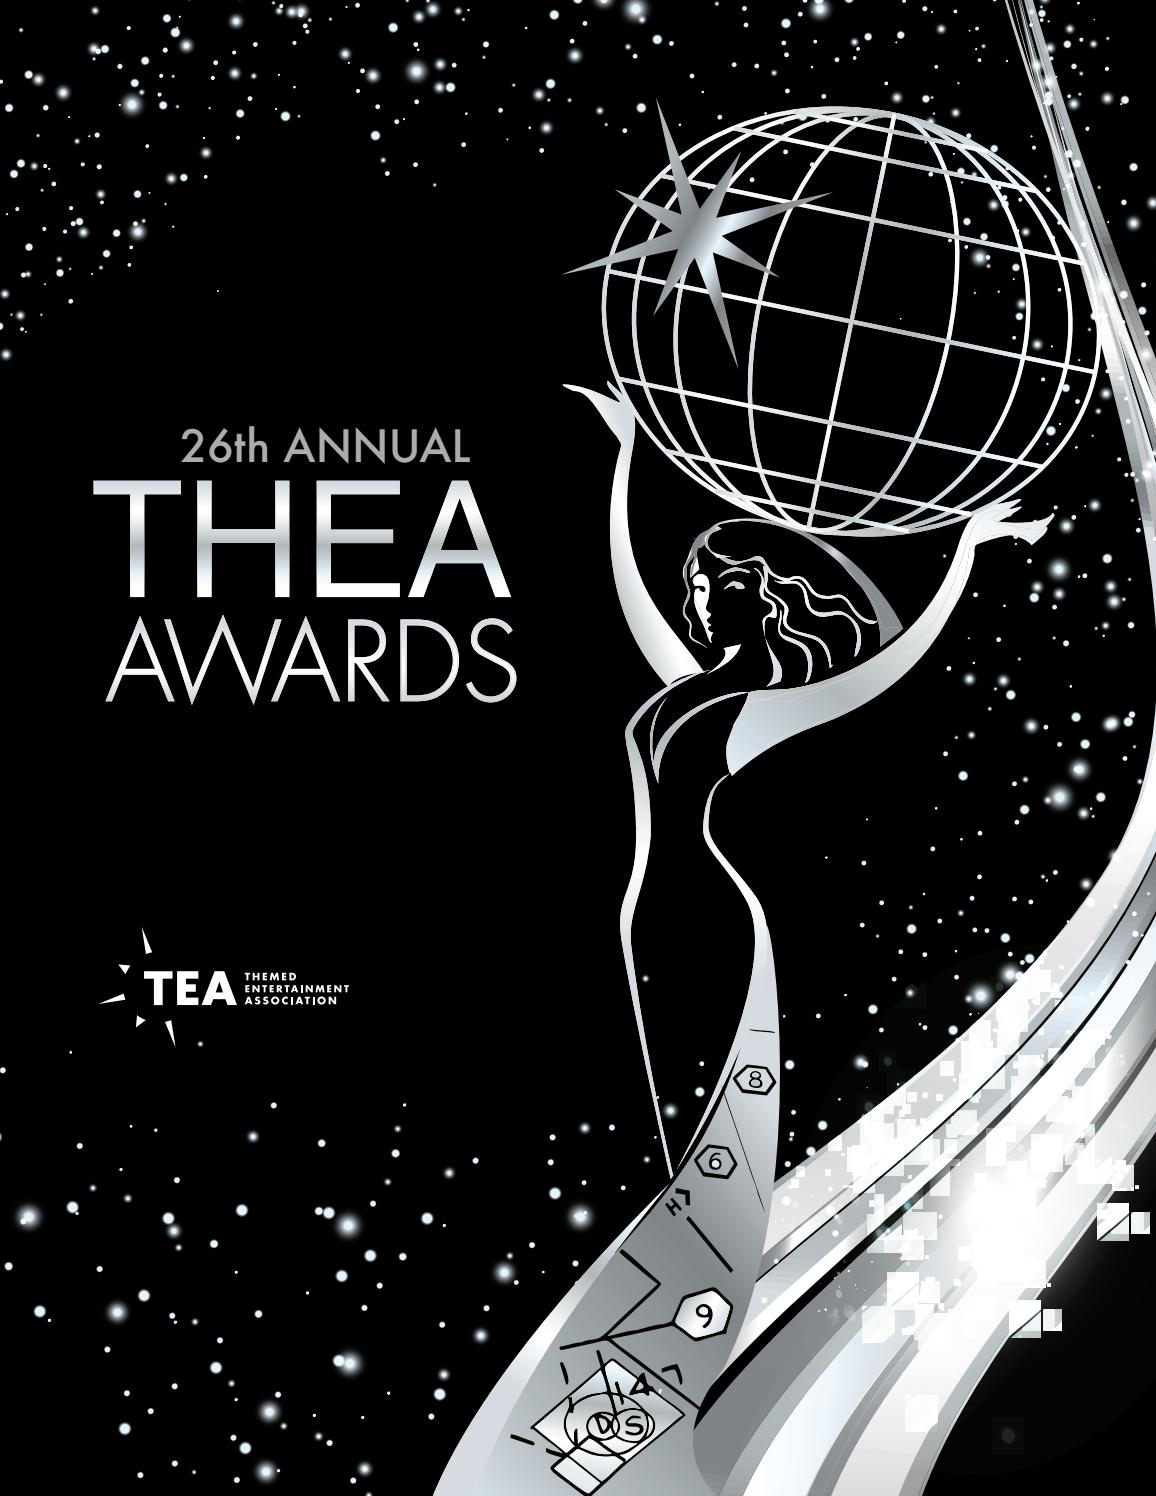 26th Annual Tea Thea Awards Program 2020 By Themed Entertainment Association Issuu